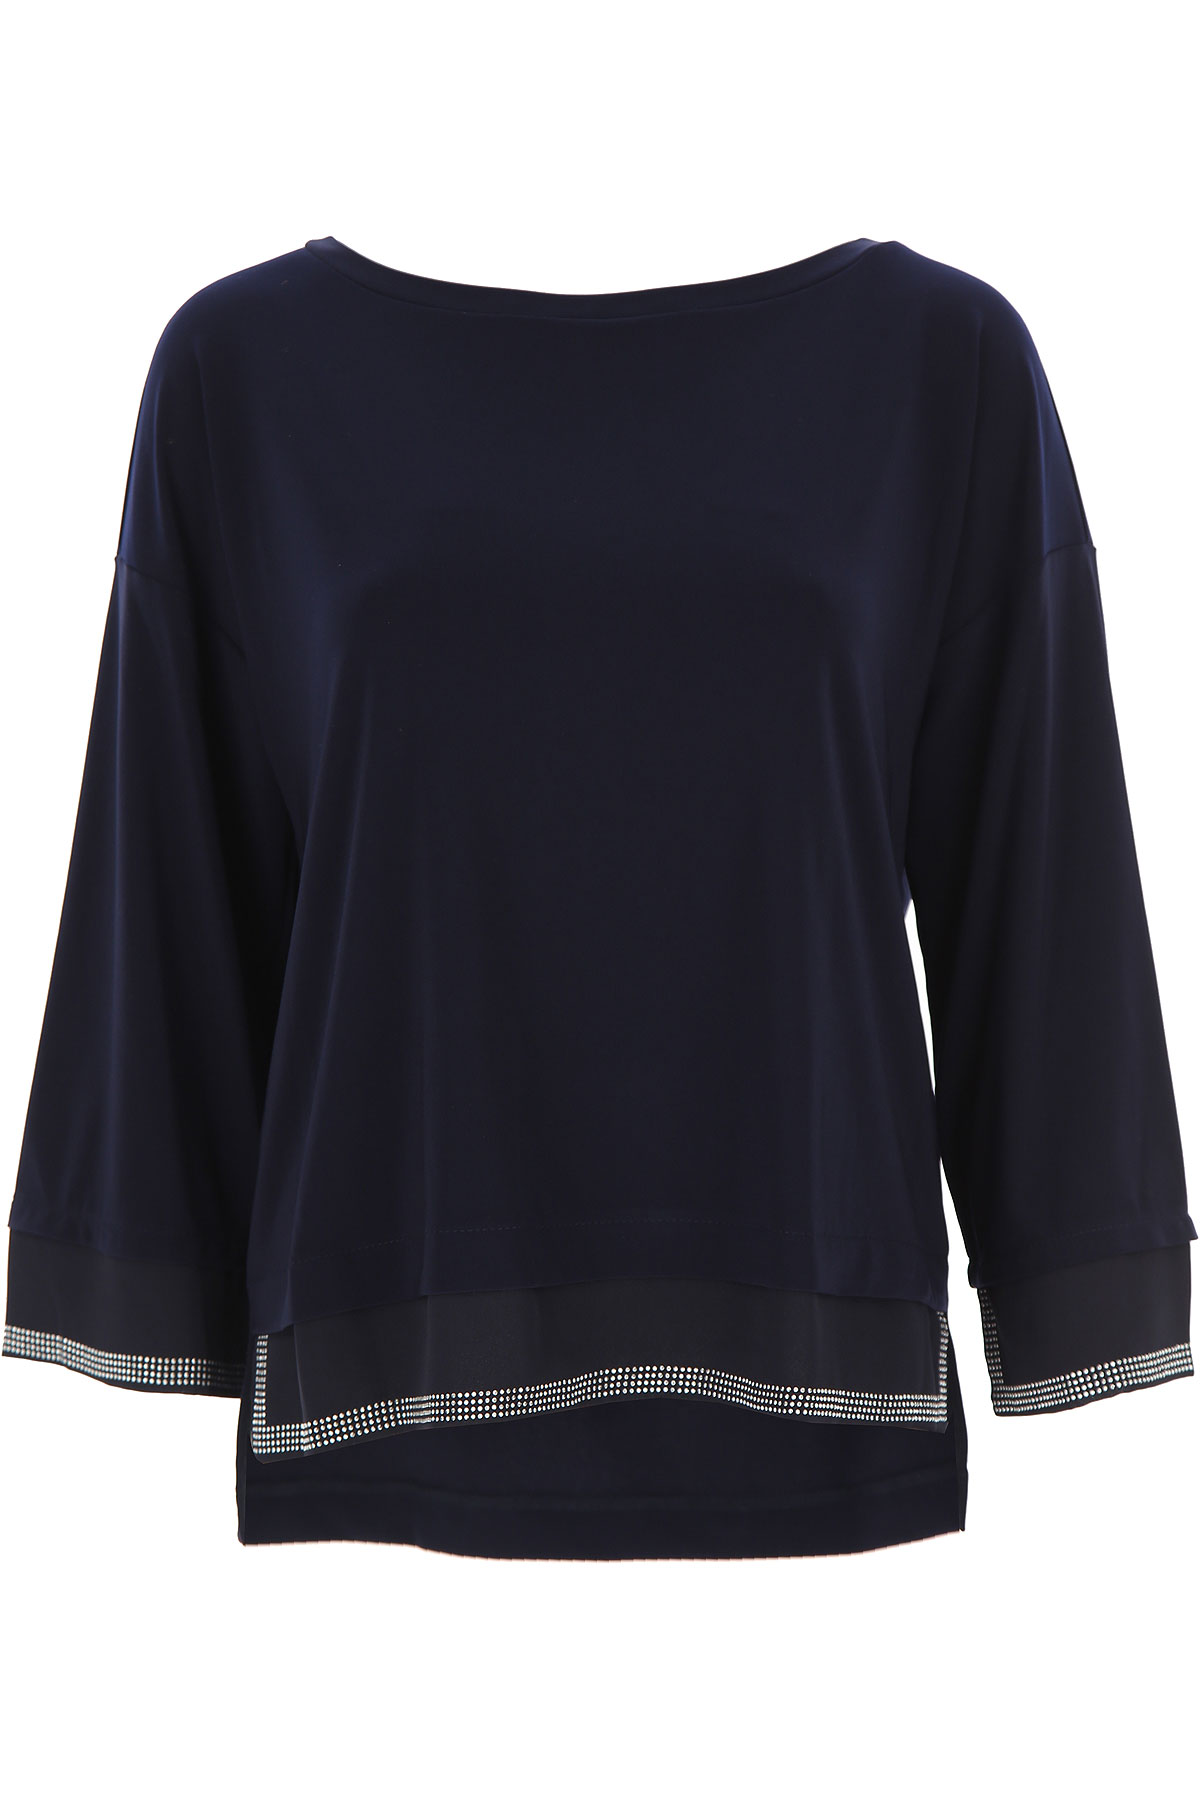 Joseph Ribkoff Top for Women On Sale, Navy Blue, polyestere, 2019, 12 14